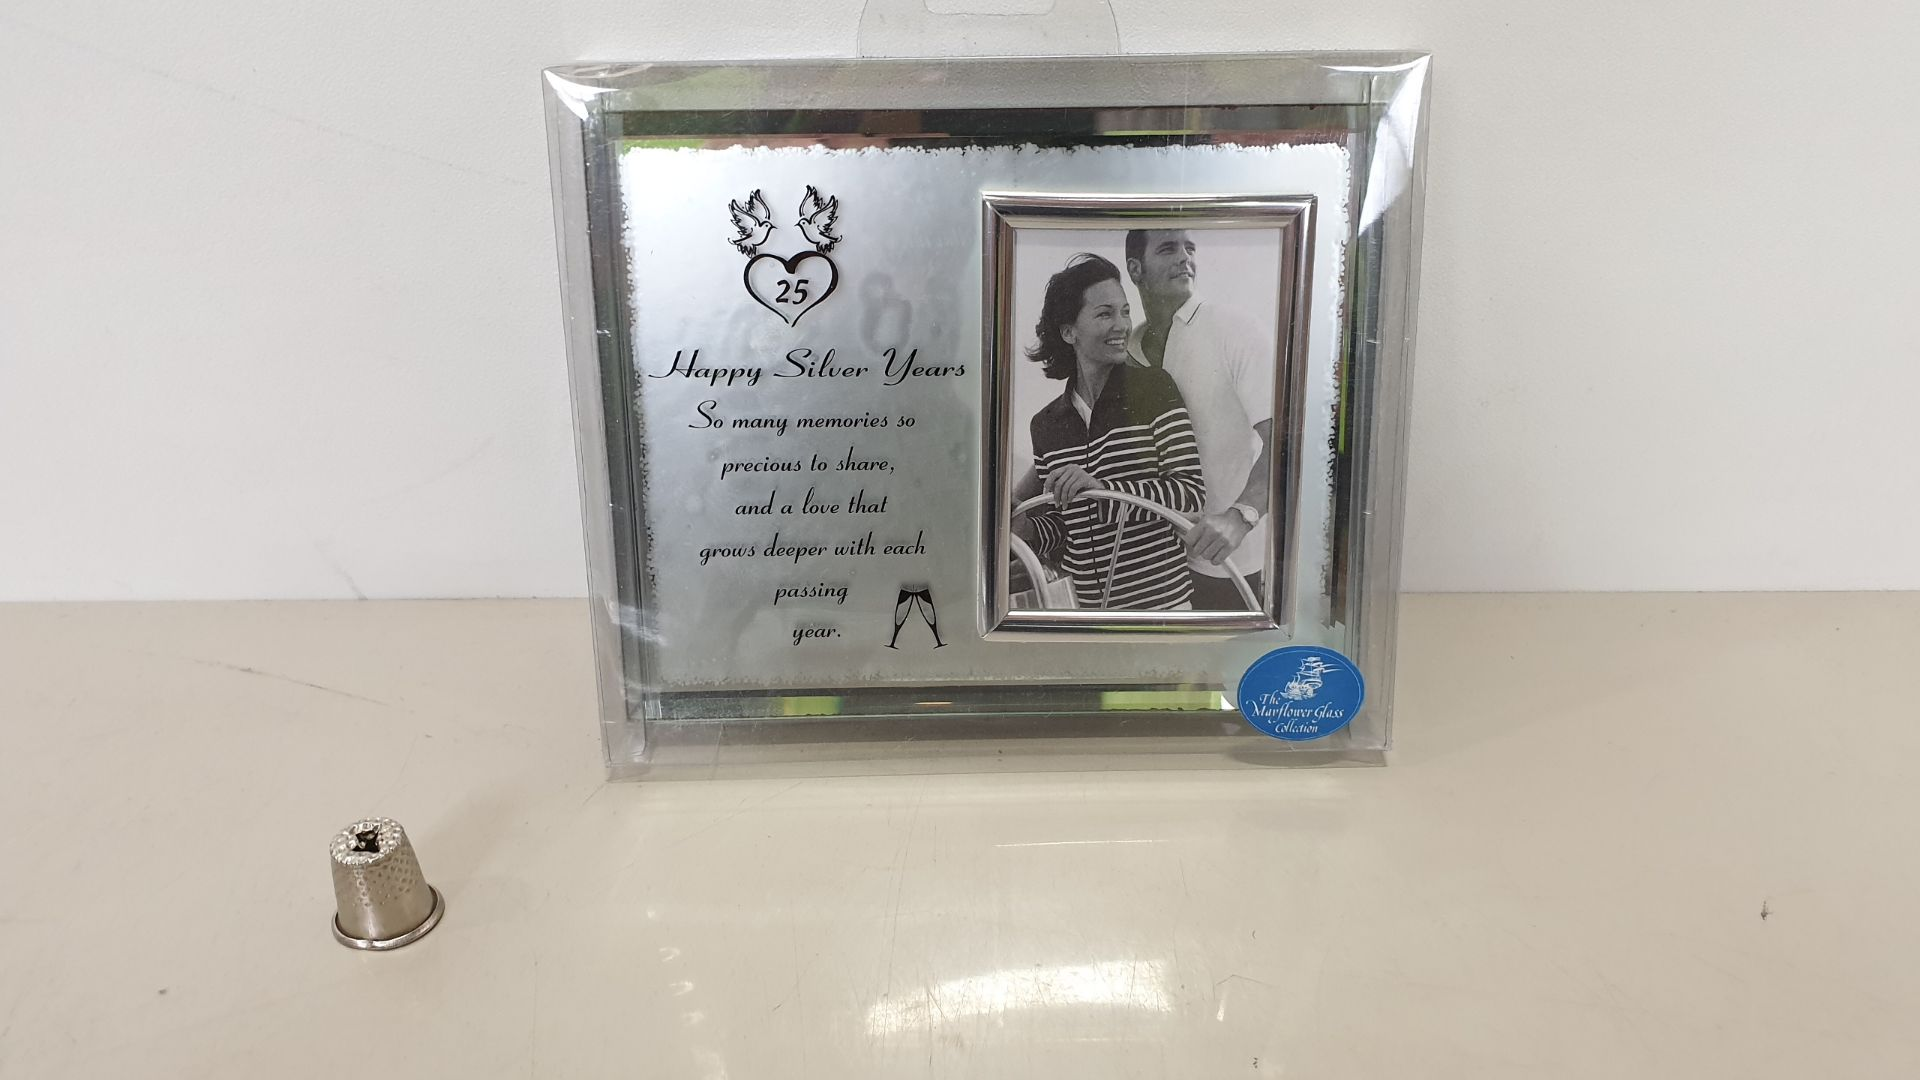 Lot 637 - 144 X BRAND NEW 'THE MAYFLOWER GLASS COLLECTION' SILVER ANNIVERSARY FRAME 'HAPPY SILVER YEARS' -